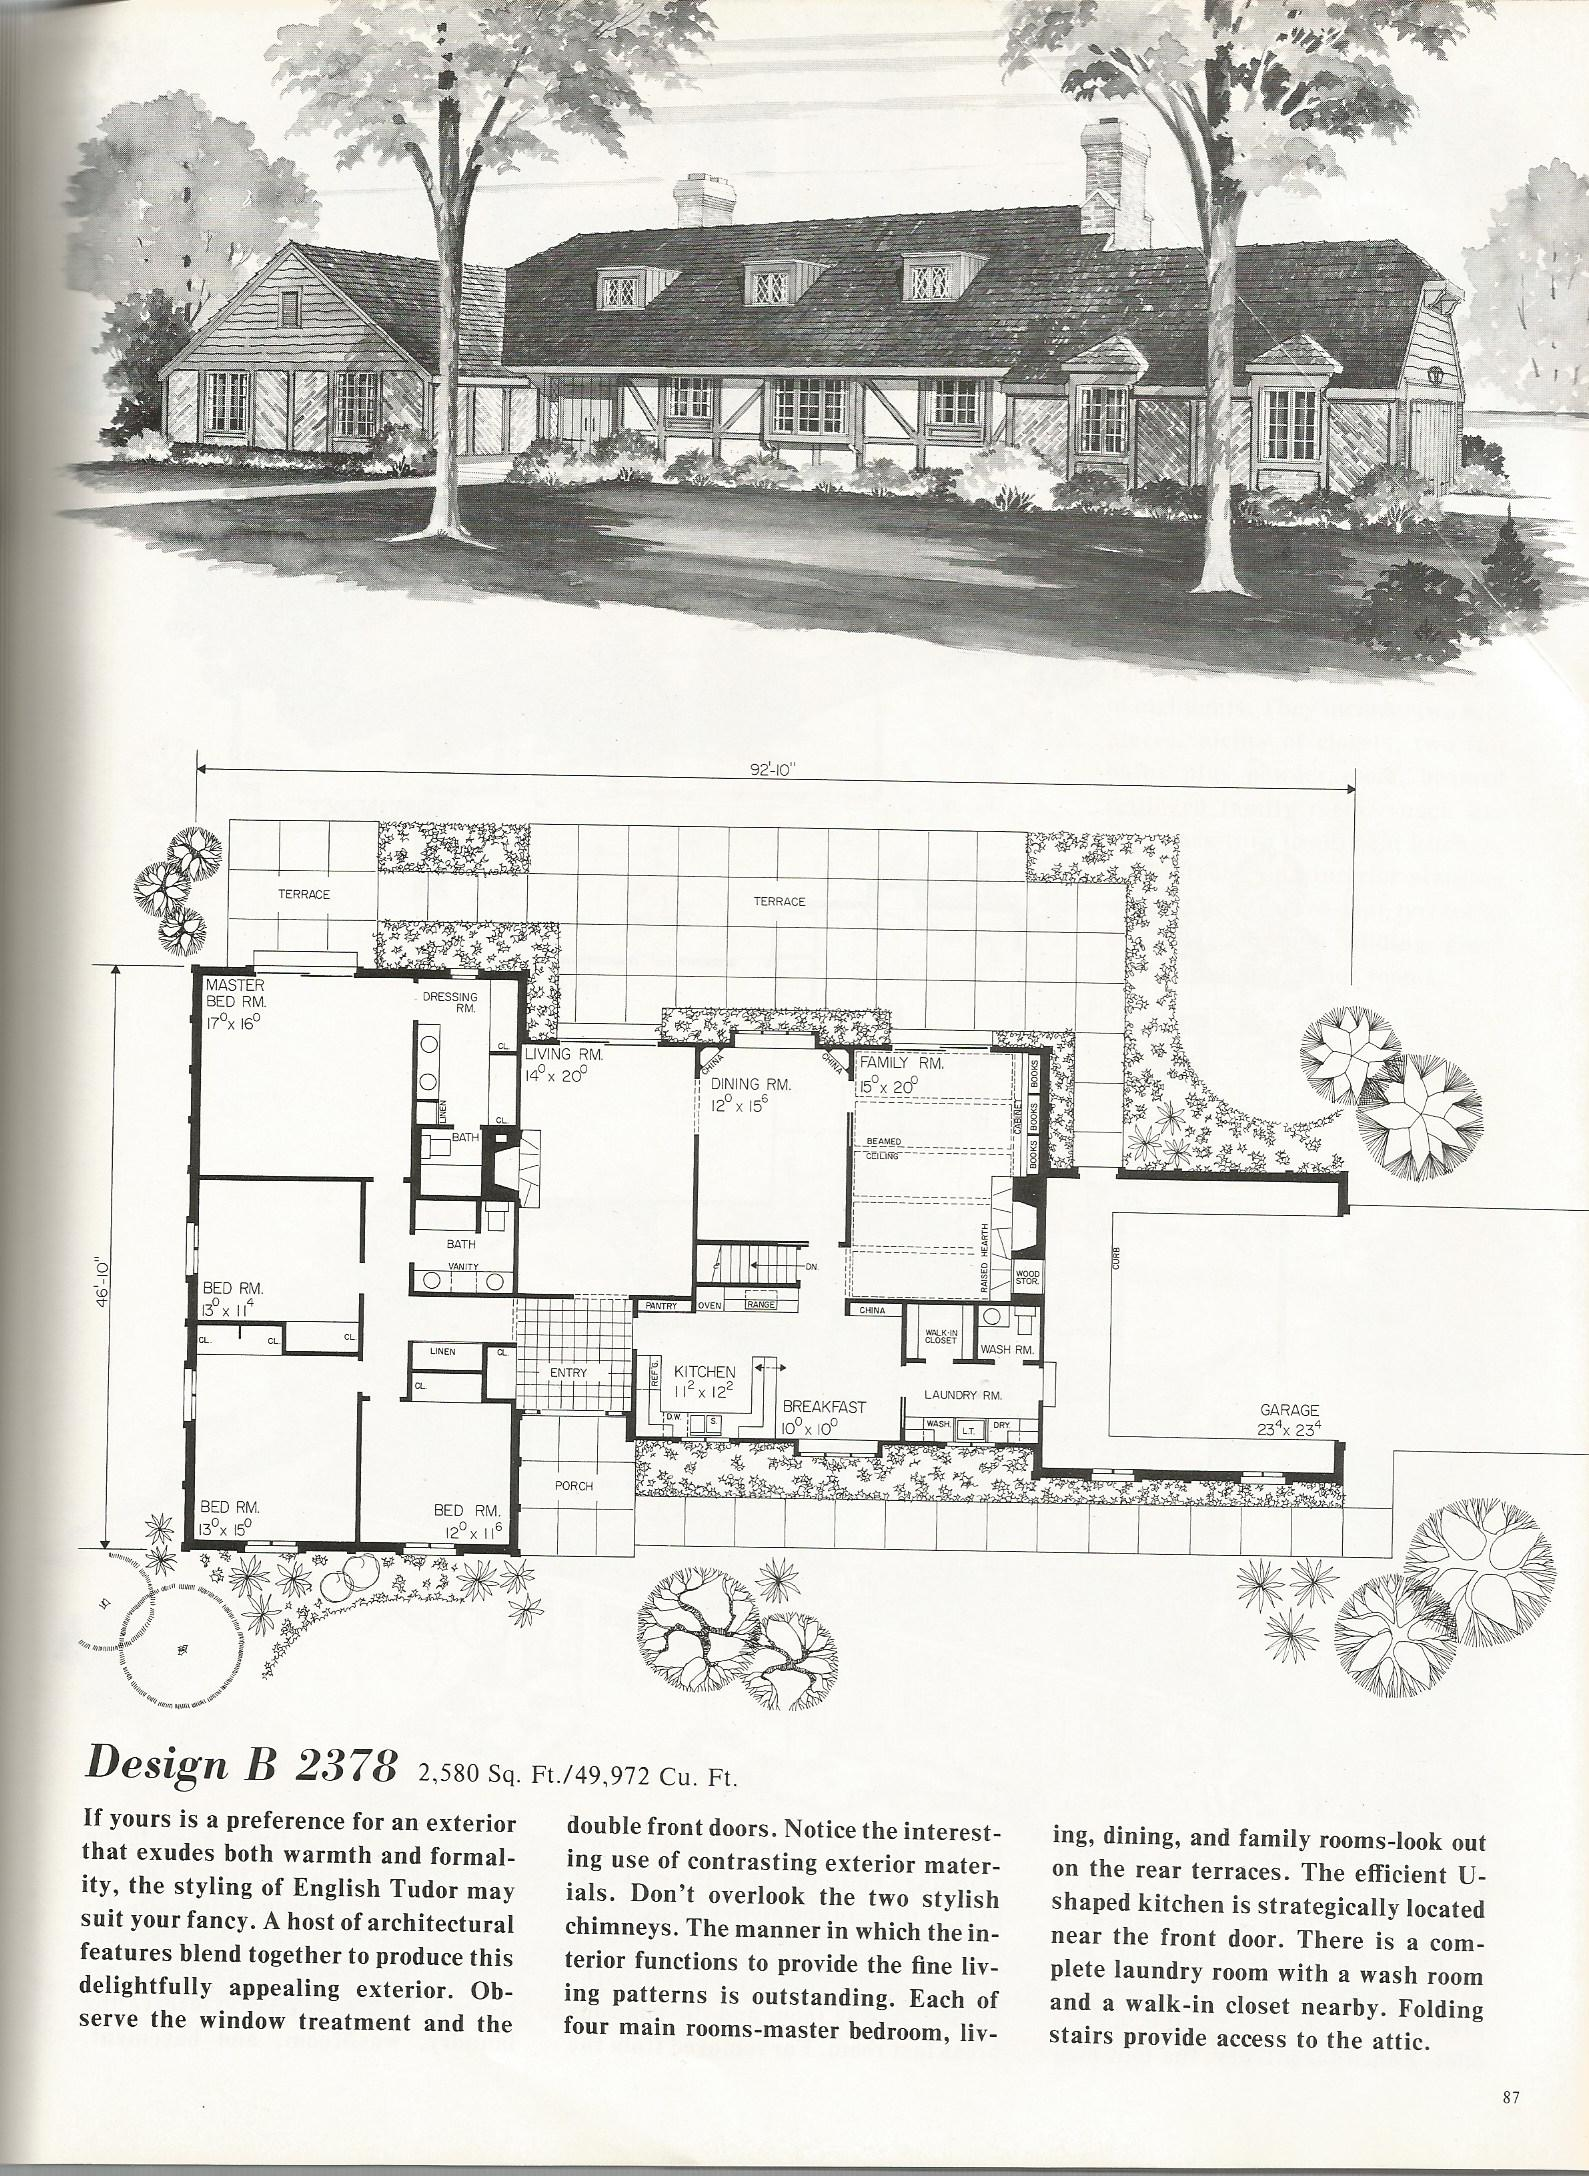 Vintage house plans 2378 antique alter ego for Classic tudor house plans